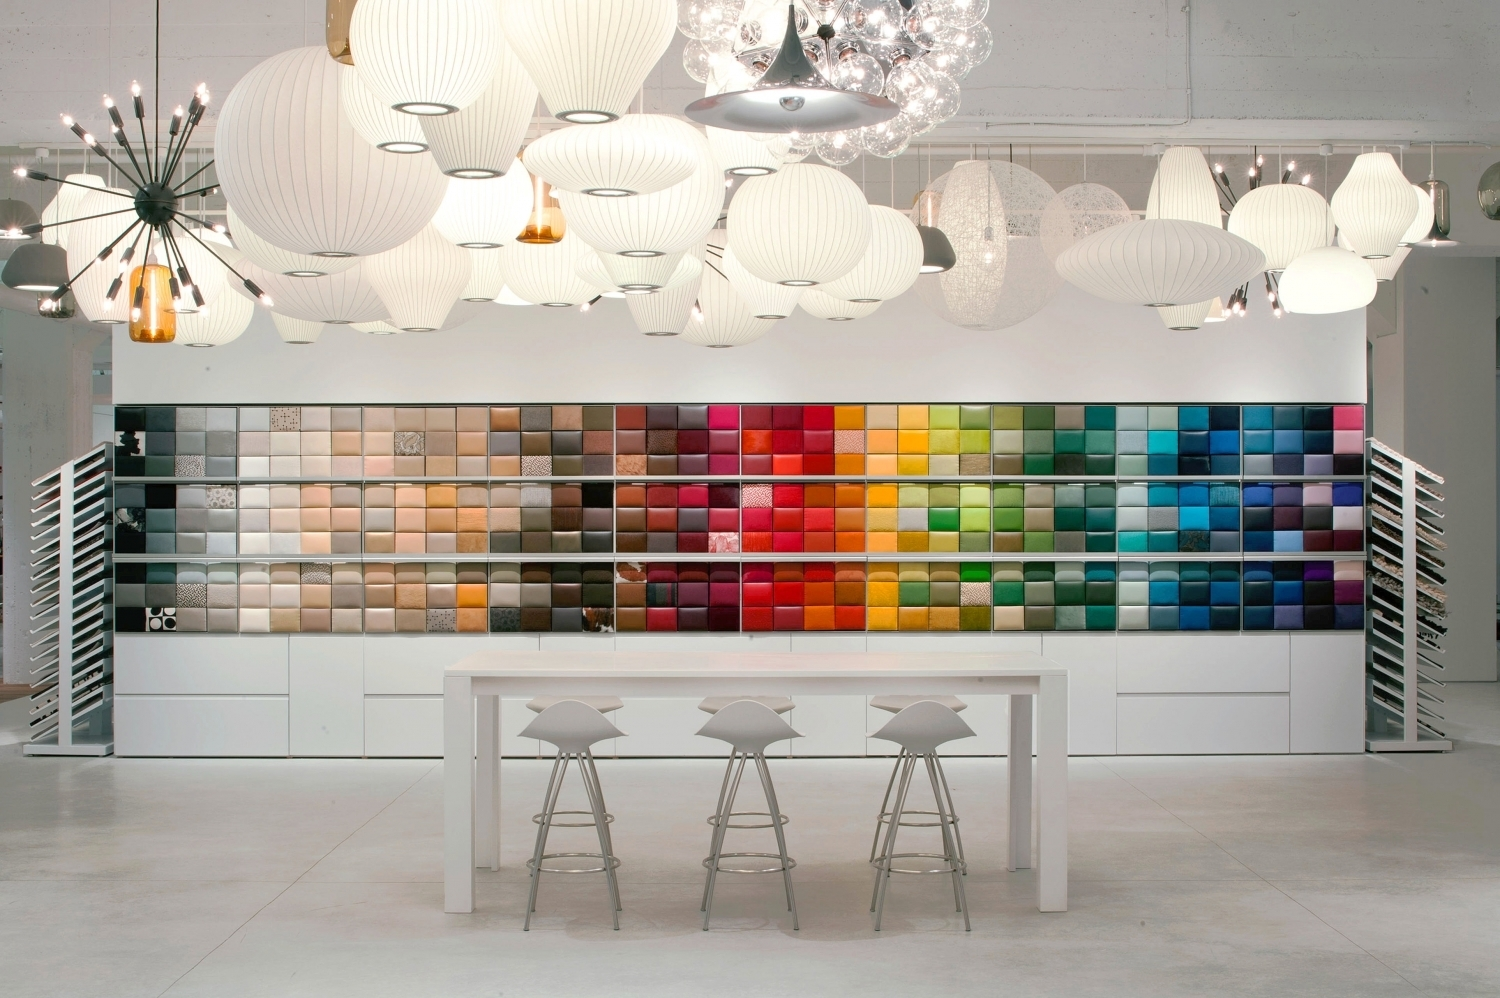 Design Within Reach - B+N Industries | Th - Retail Inspiration for Recent Fabric Swatch Wall Art